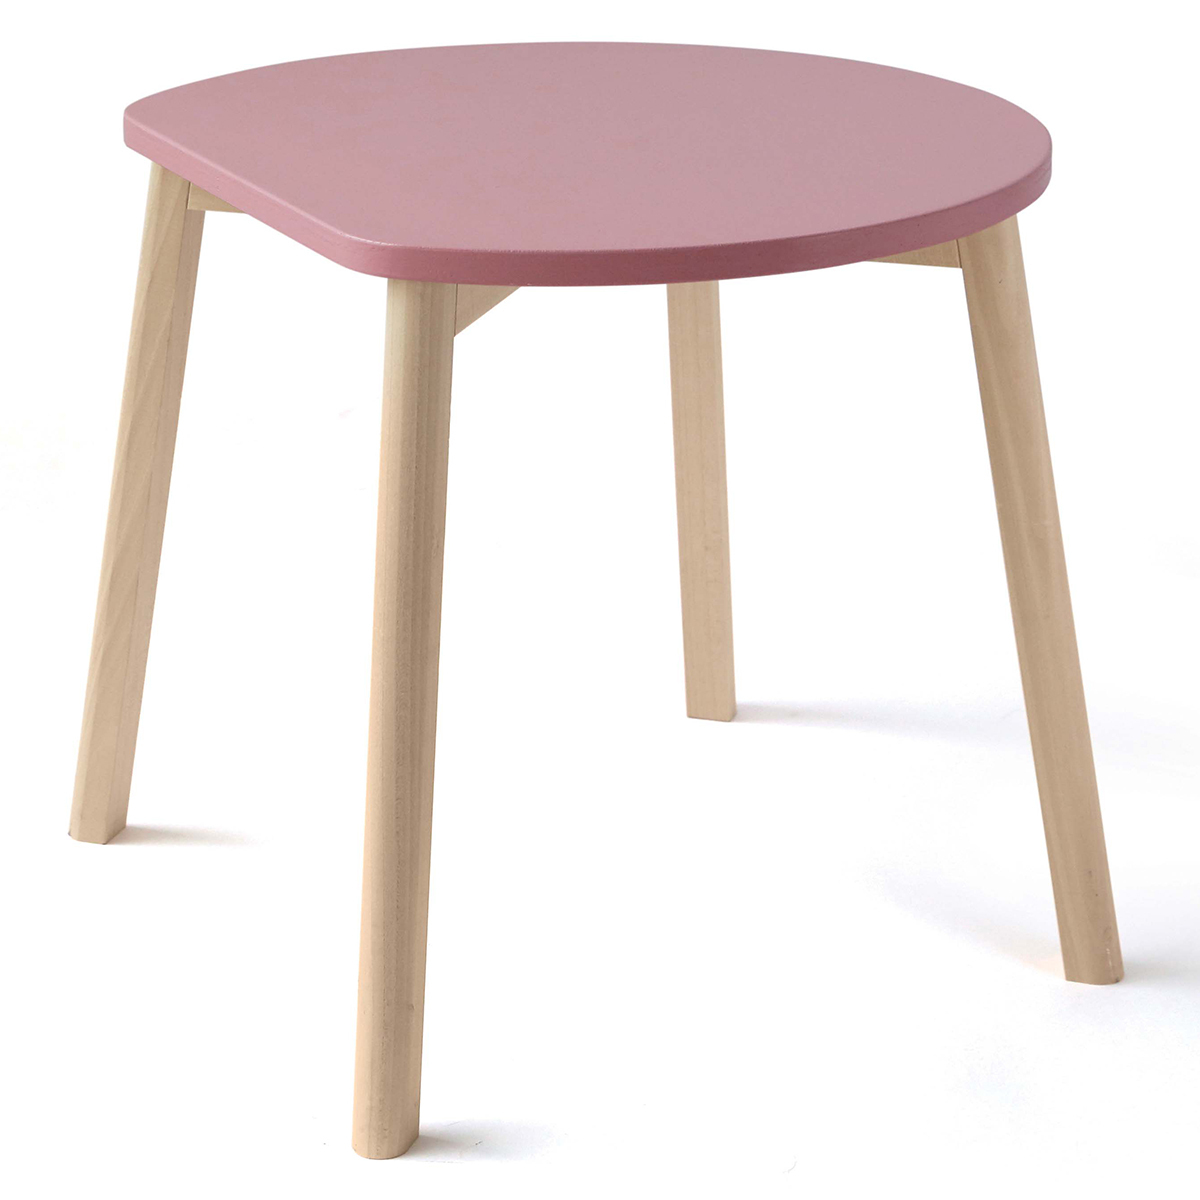 Table & Chaise Table Half-Moon - Rose Table Half-Moon - Rose